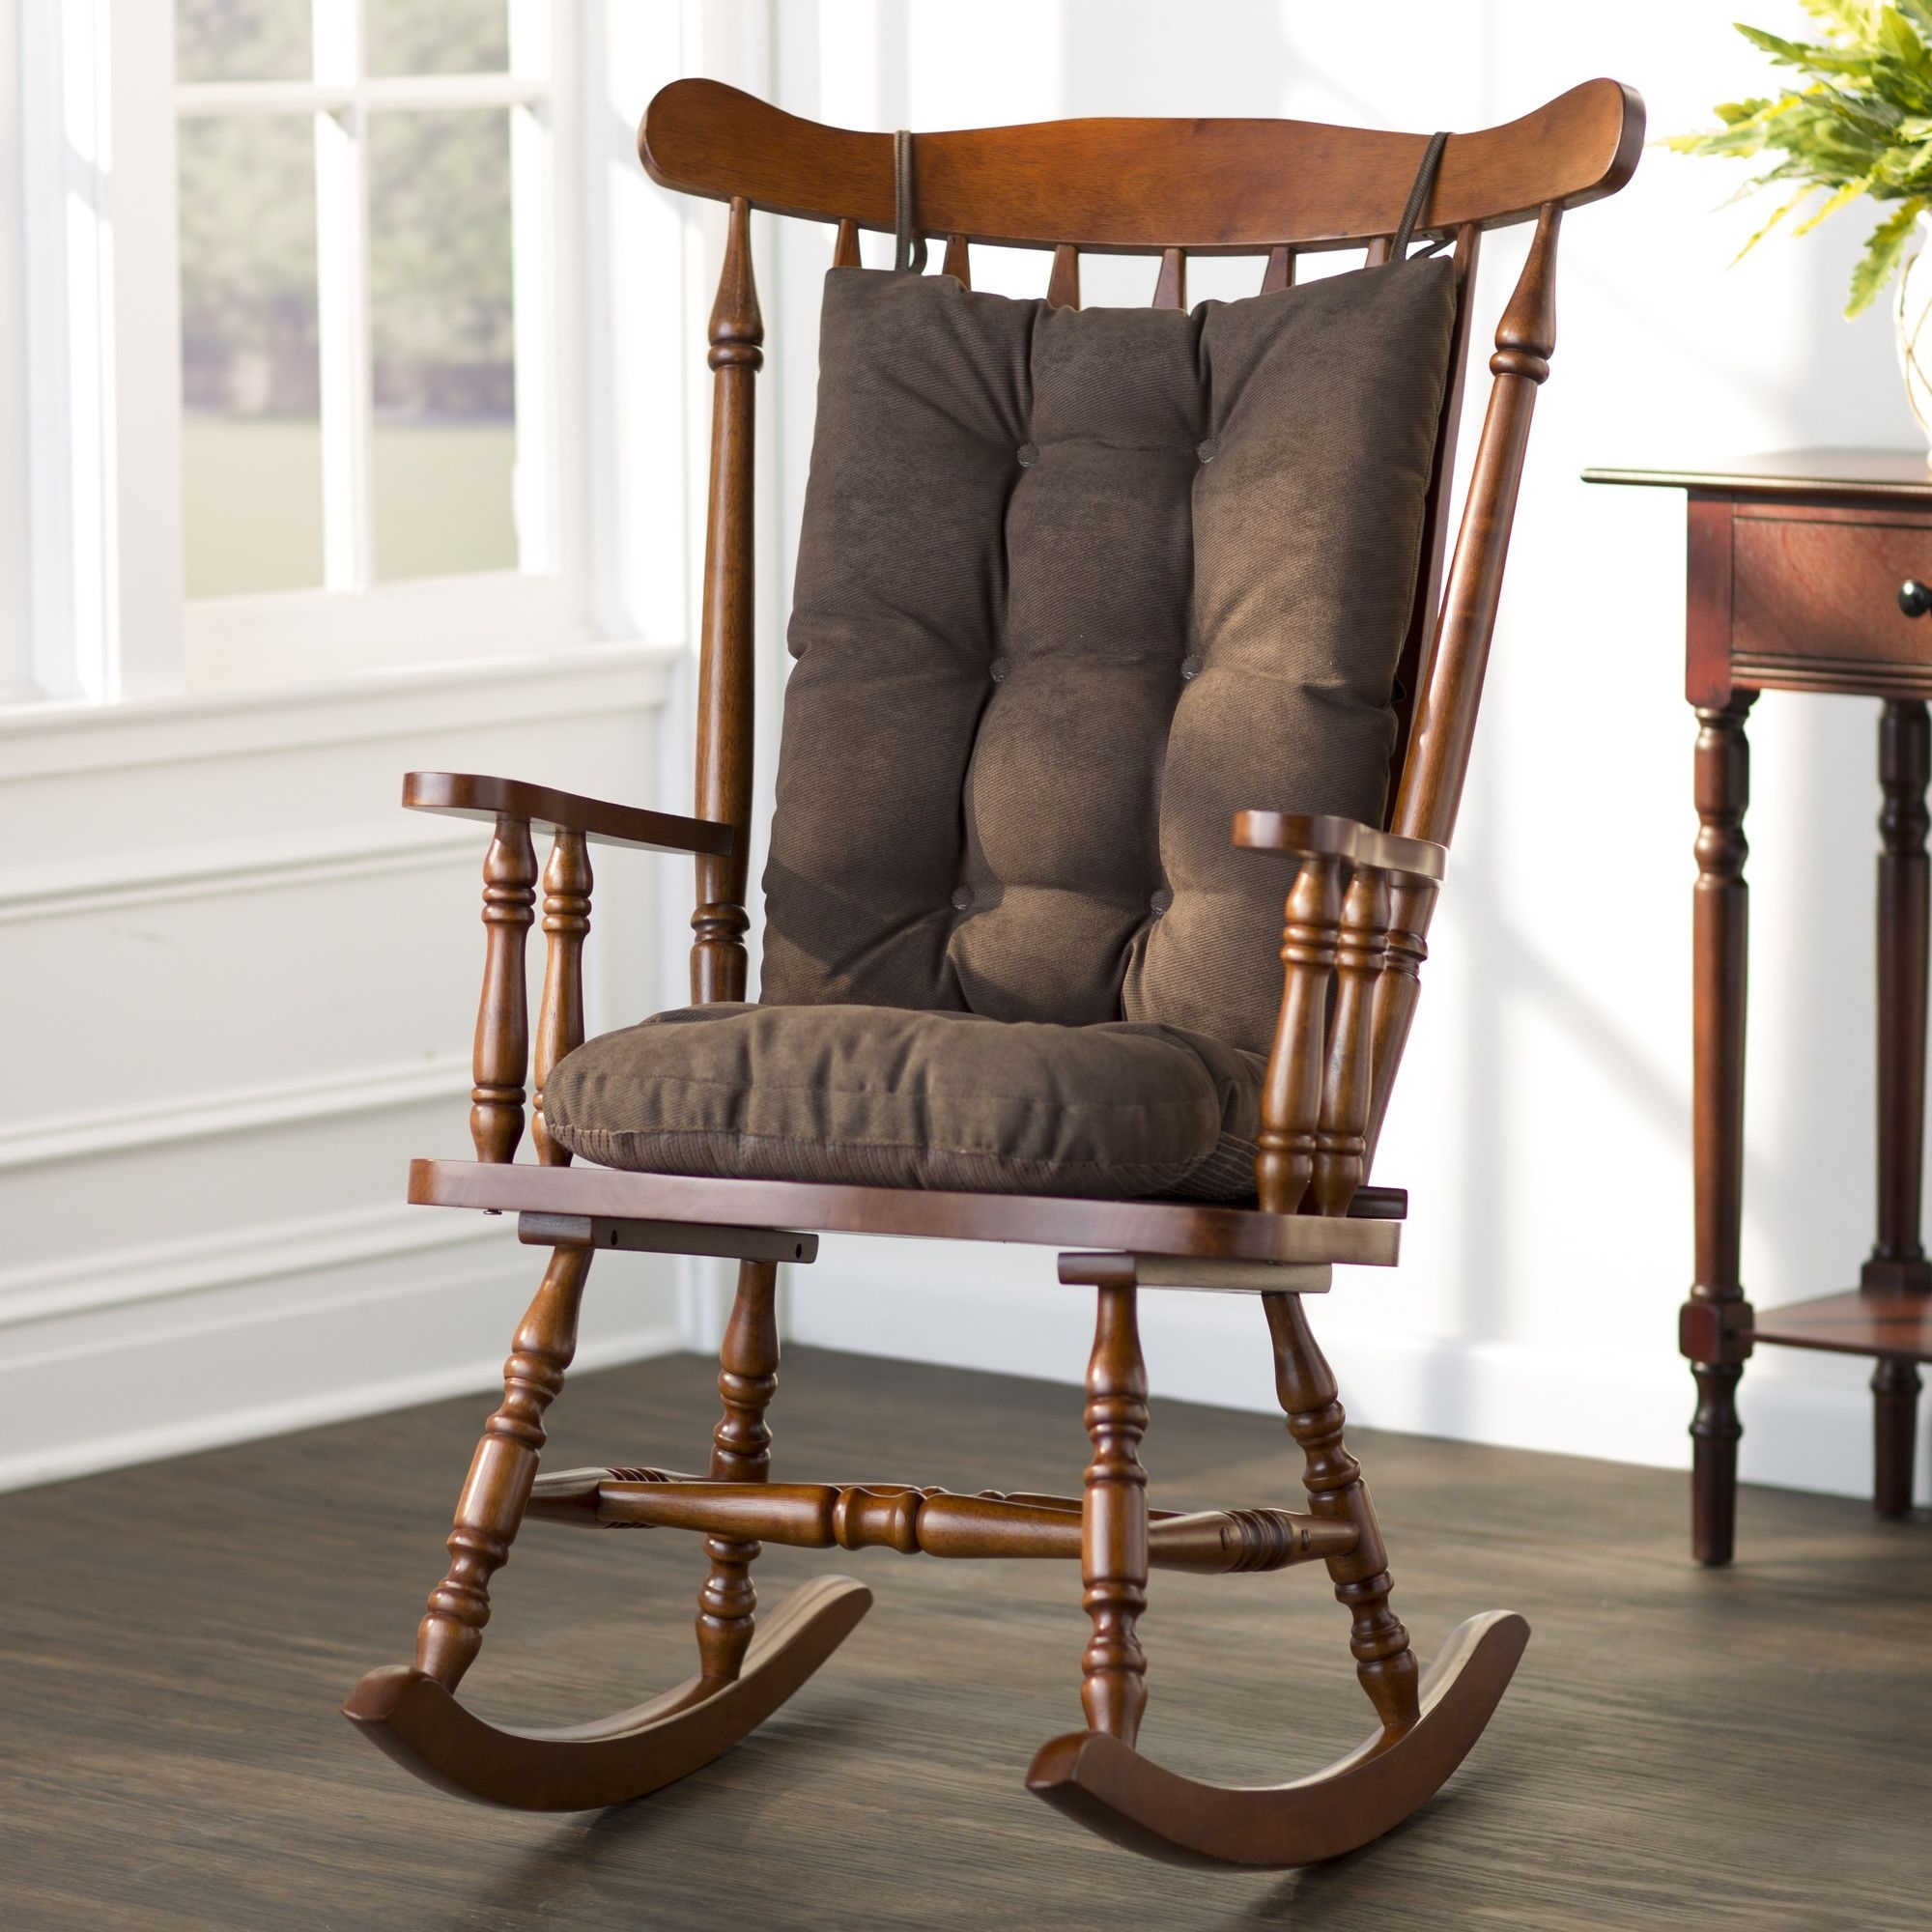 Rocking Chair Cushions Regarding Rocking Chairs At Wayfair (View 4 of 15)